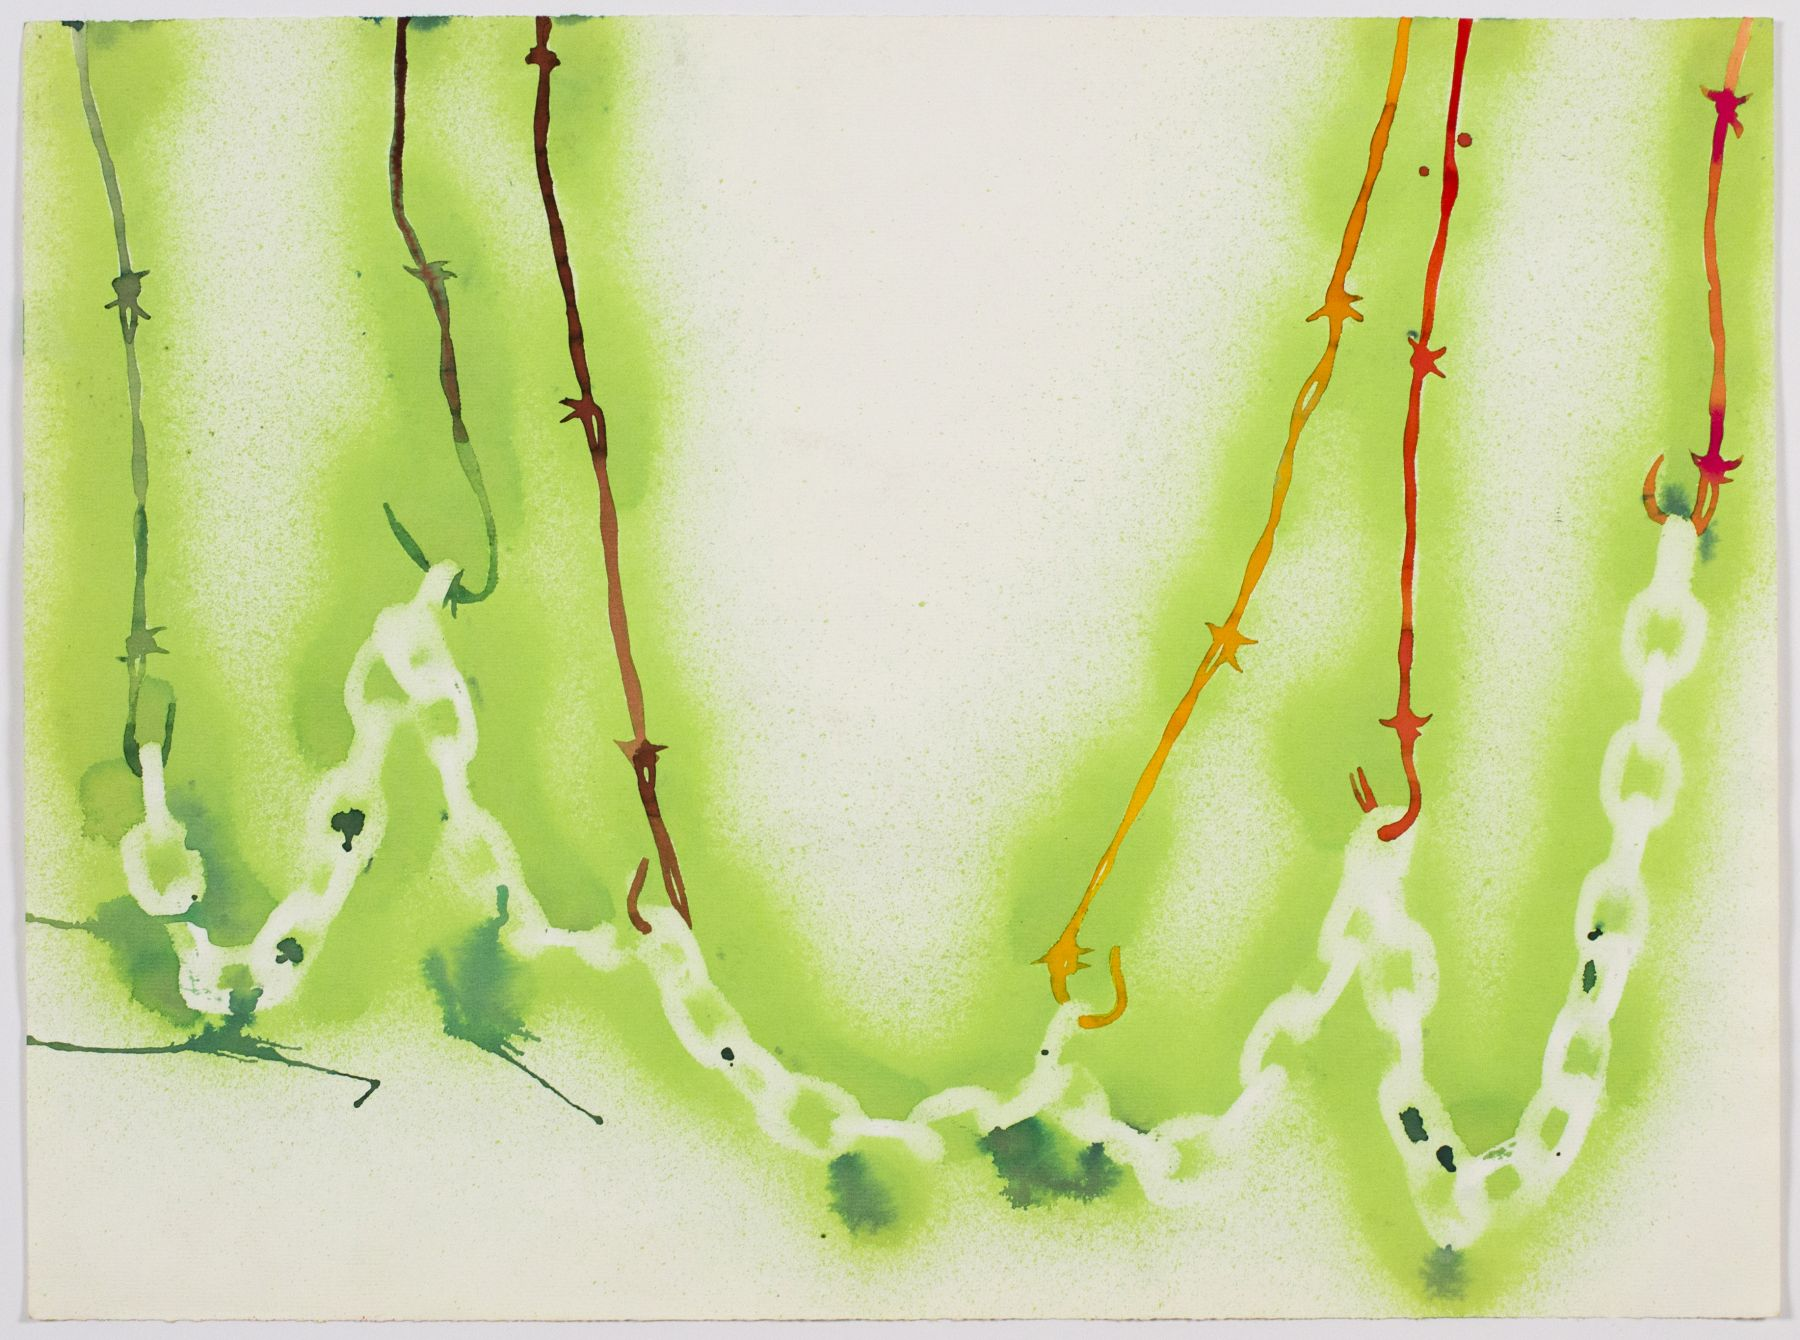 Untitled, 1974, Watercolor and ink on paper